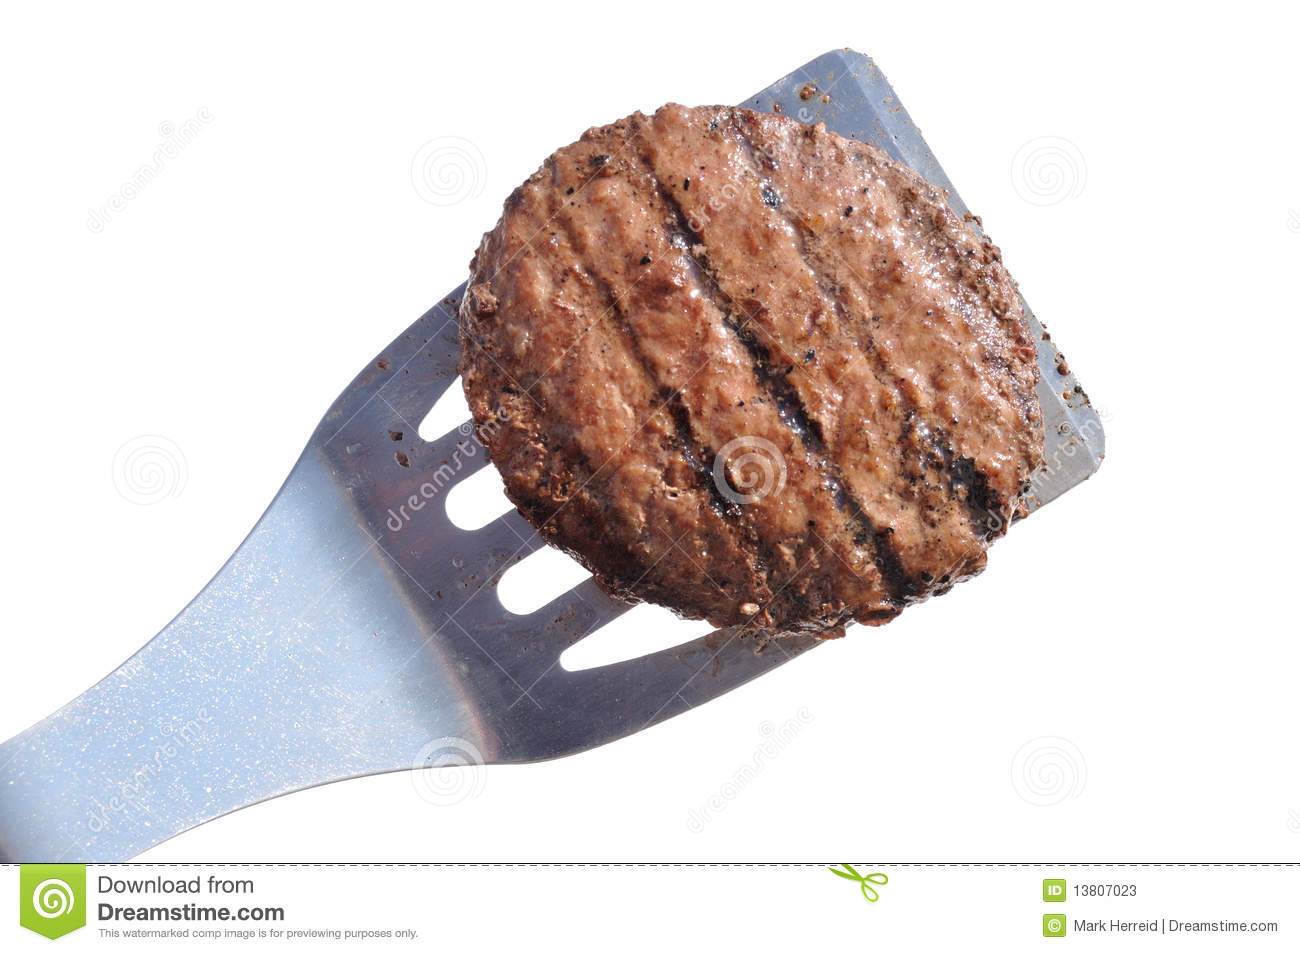 Grilled Hamburger Patty on a Spatula Isolated on White Grilled Hamburger Patty